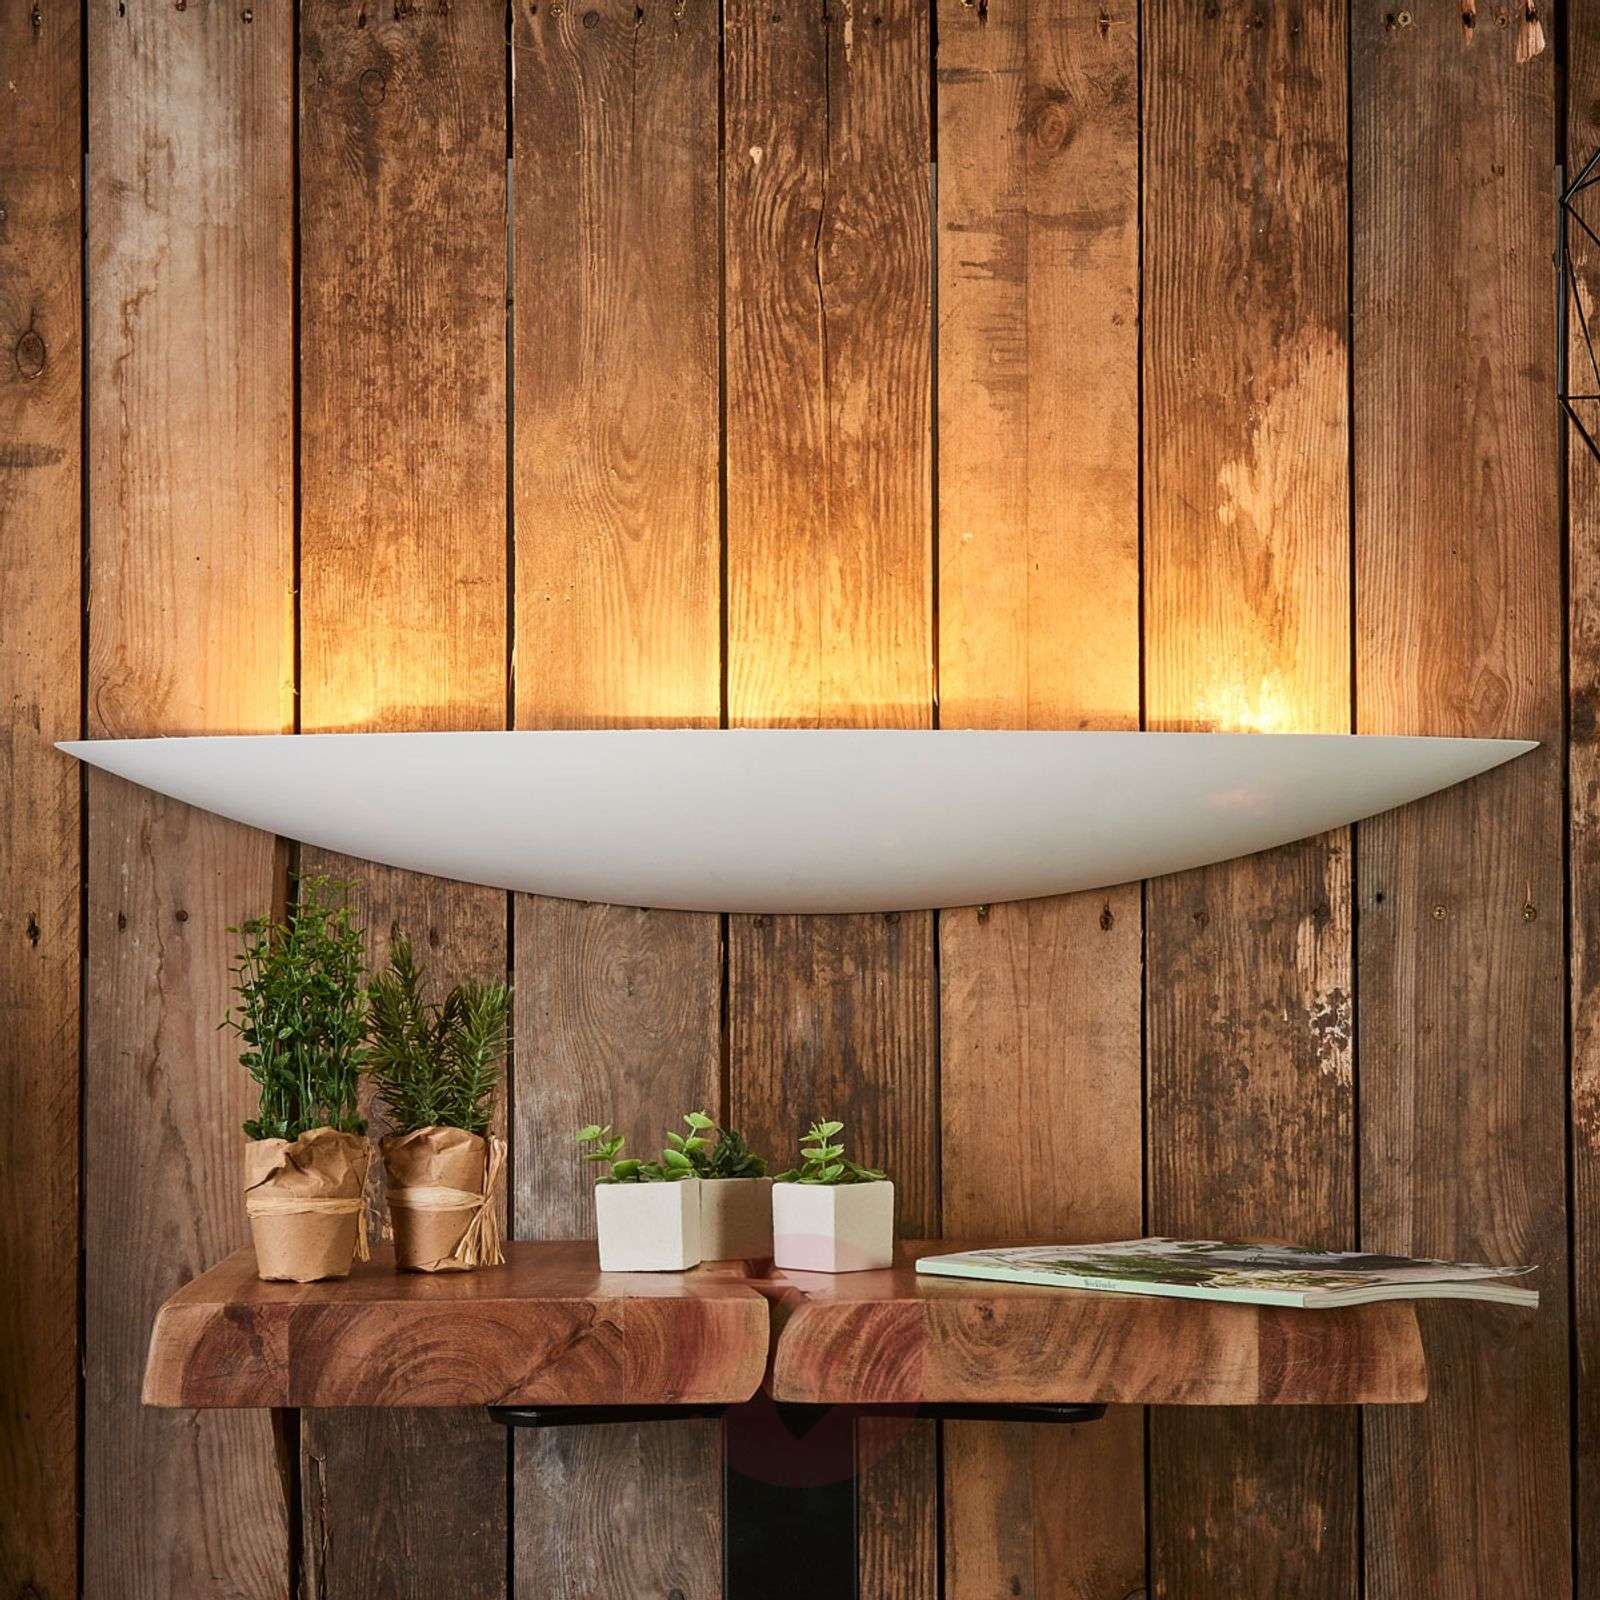 Grote gips wandlamp Tommi in wit-9613070-05